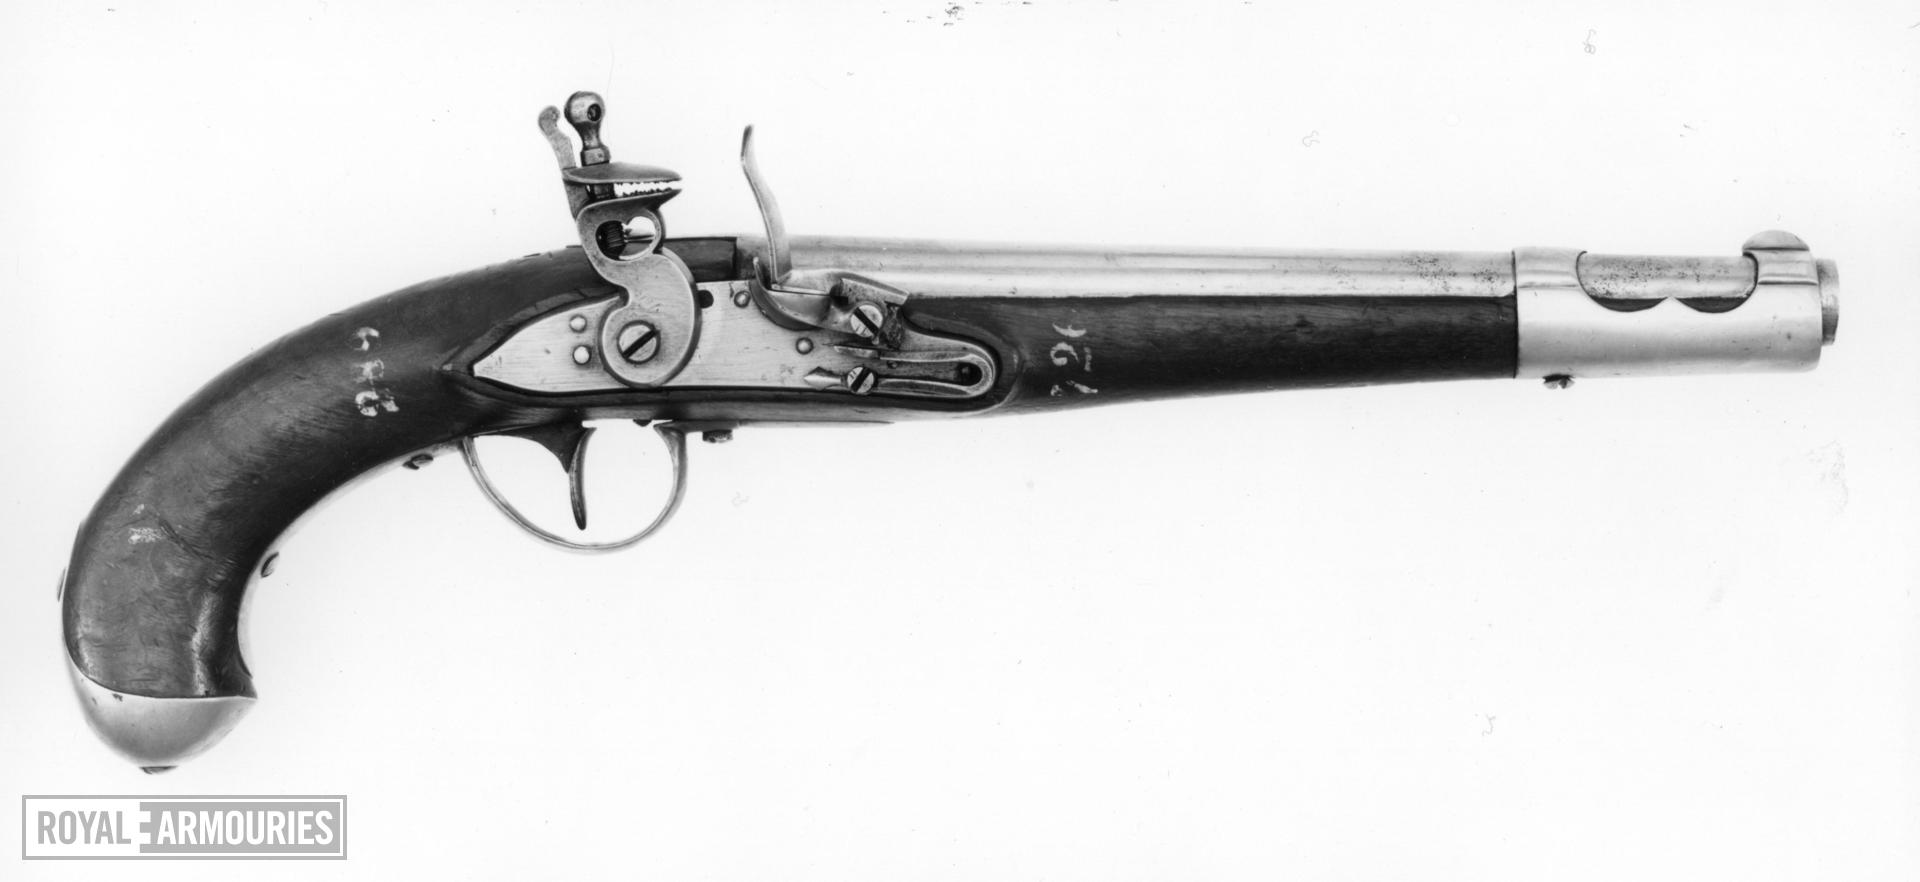 Flintlock muzzle-loading pistol - 1798 Cavalry Model